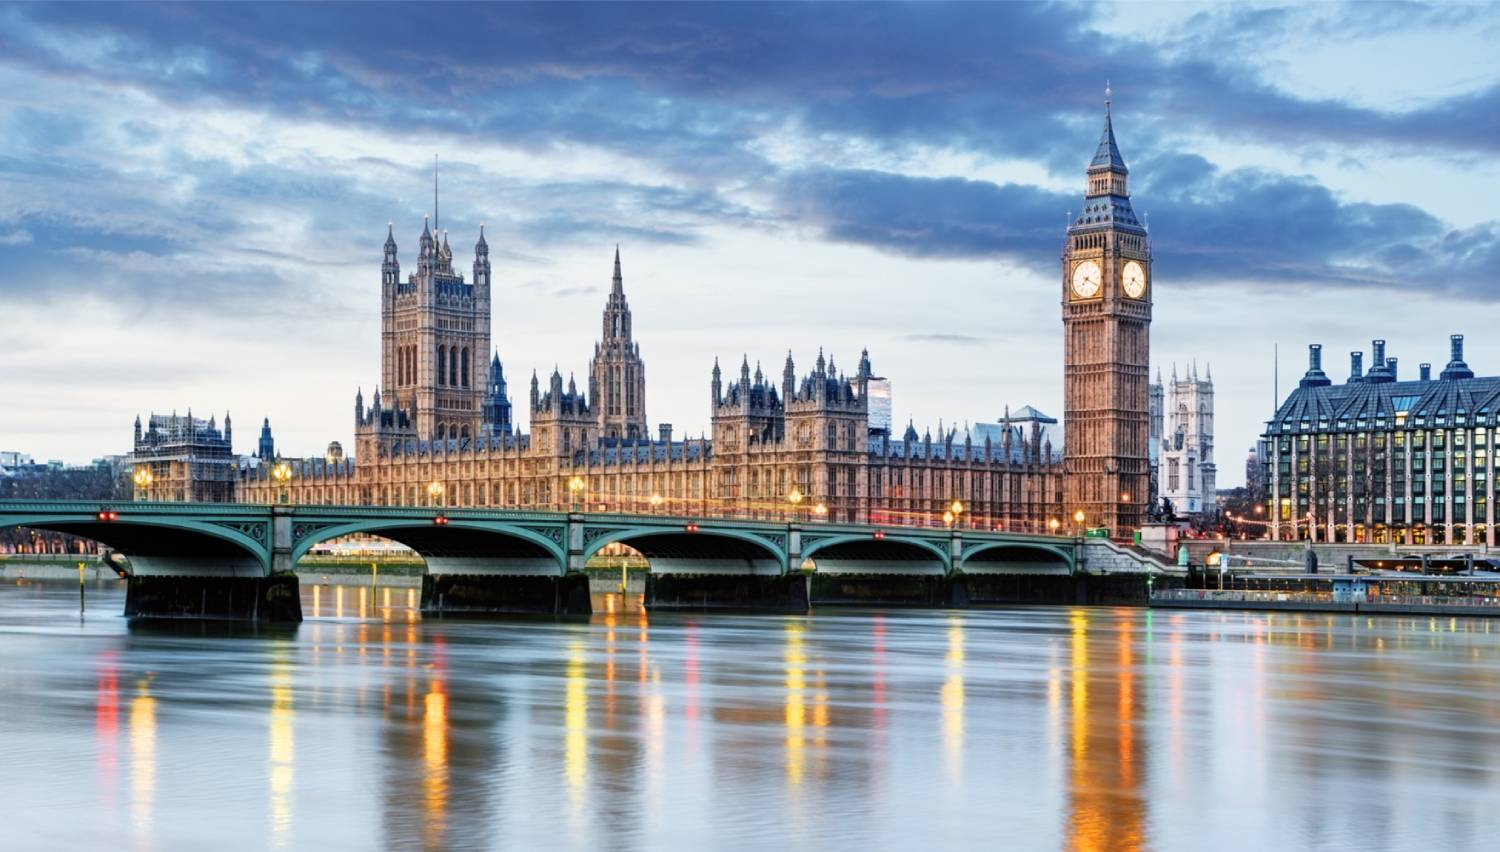 River Thames - Things To Do In London